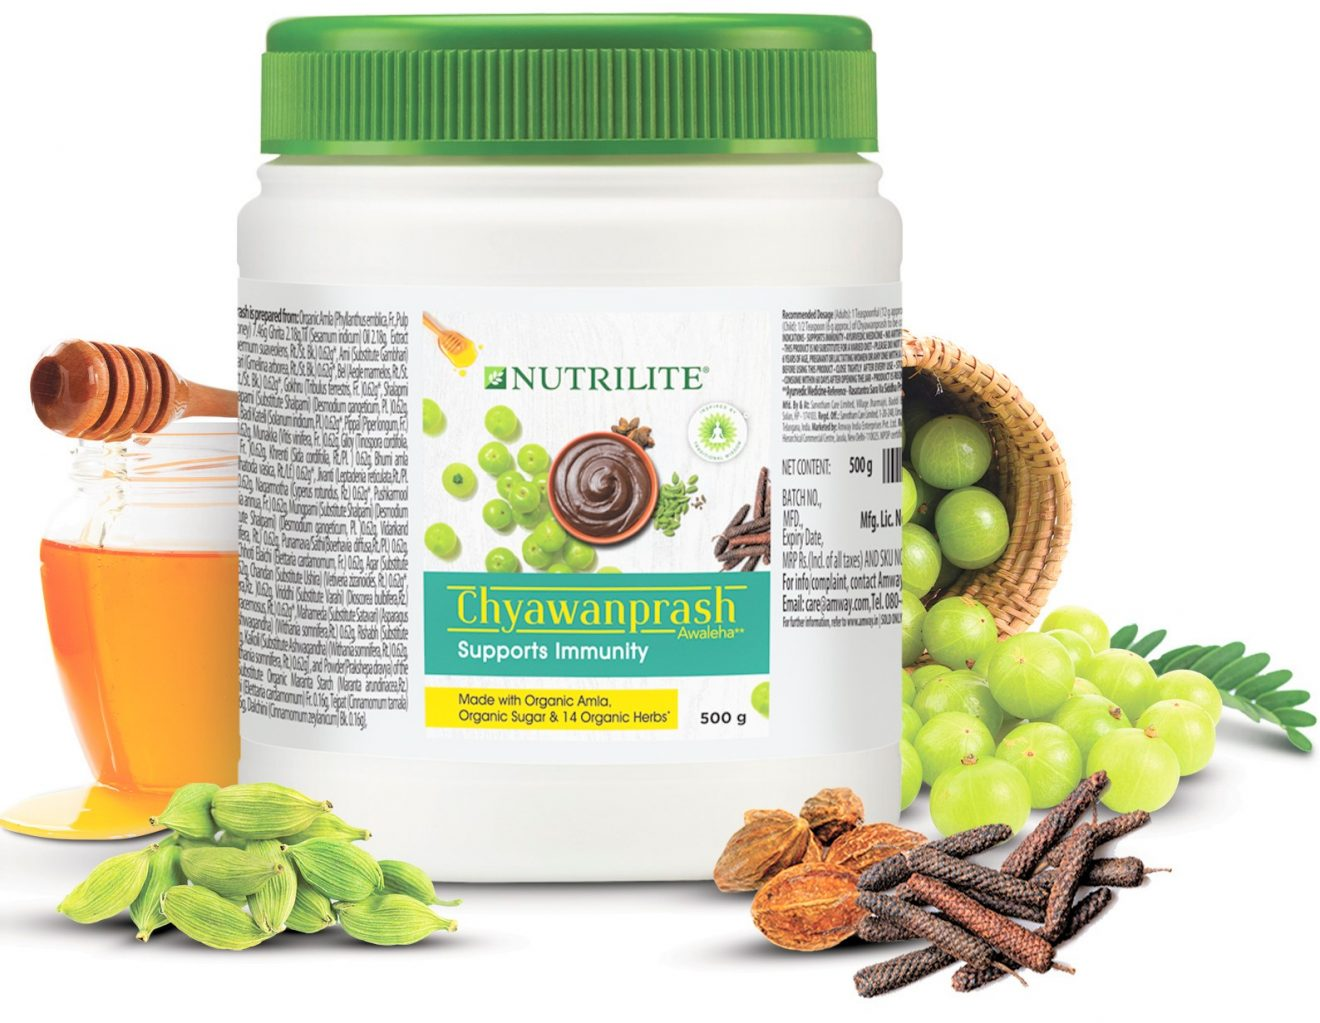 Global Leader in Nutrition Amway bets on Bag Ayurveda